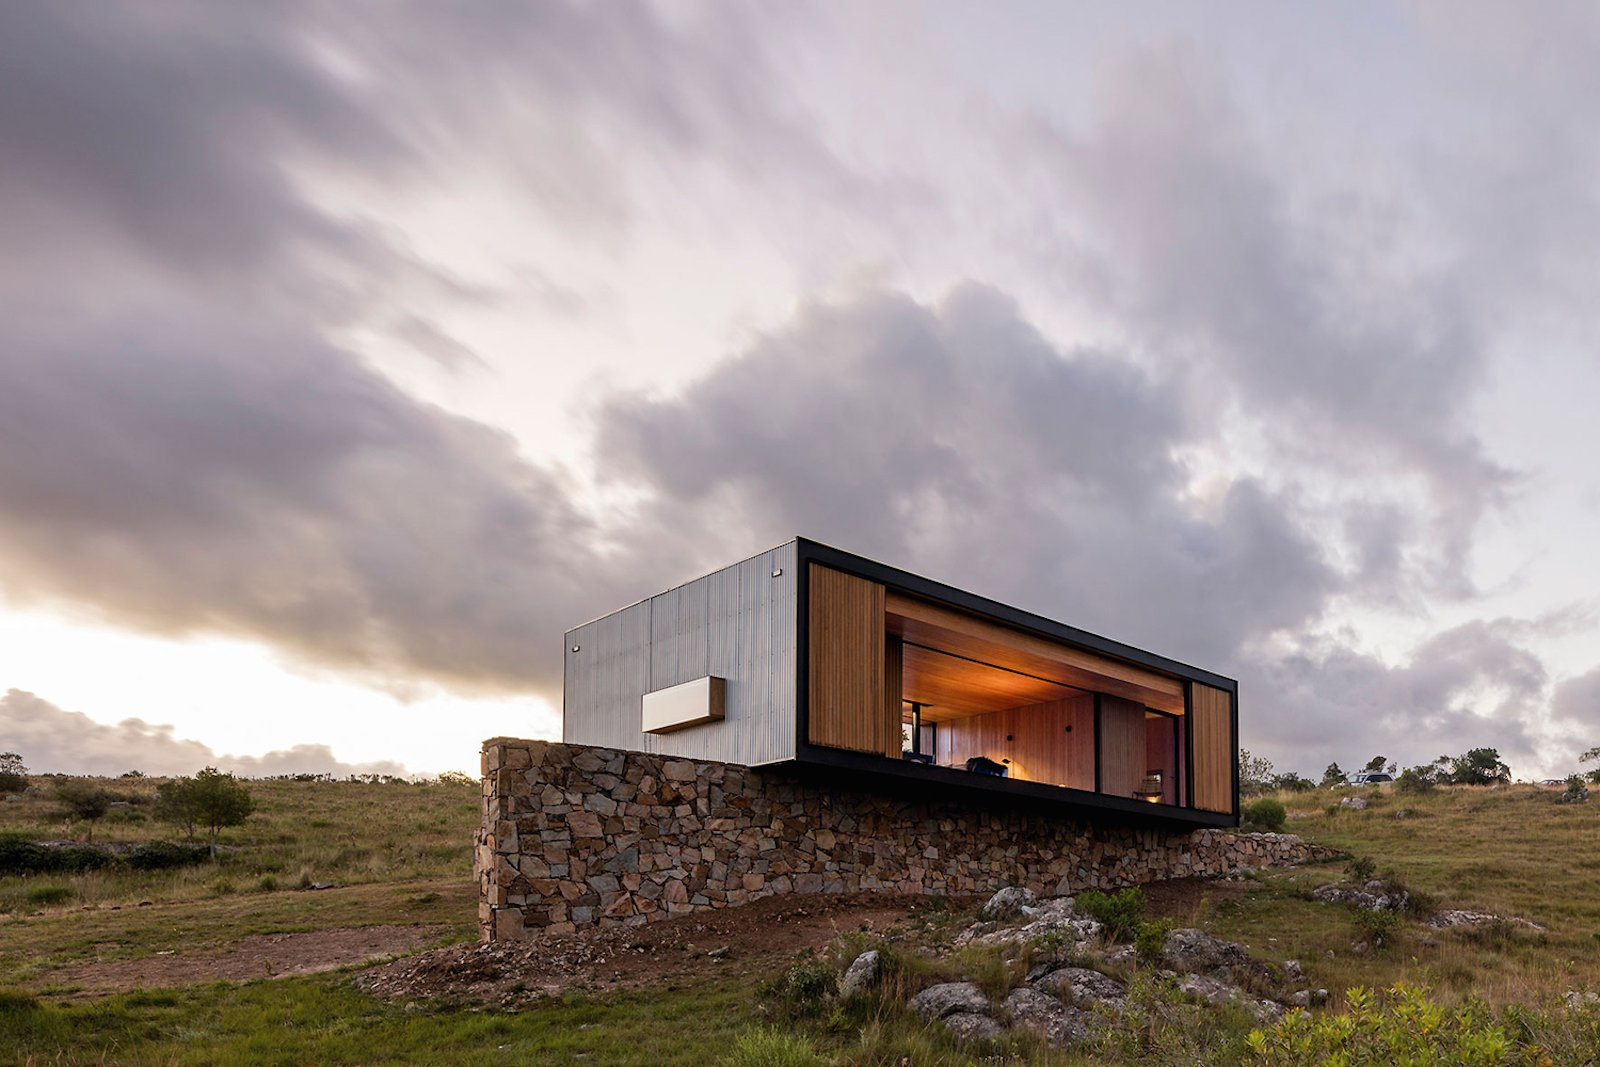 Exterior, Prefab Building Type, and House Building Type  Photo 4 of 16 in A Remote Prefab in Uruguay Is Completely Self-Sufficient